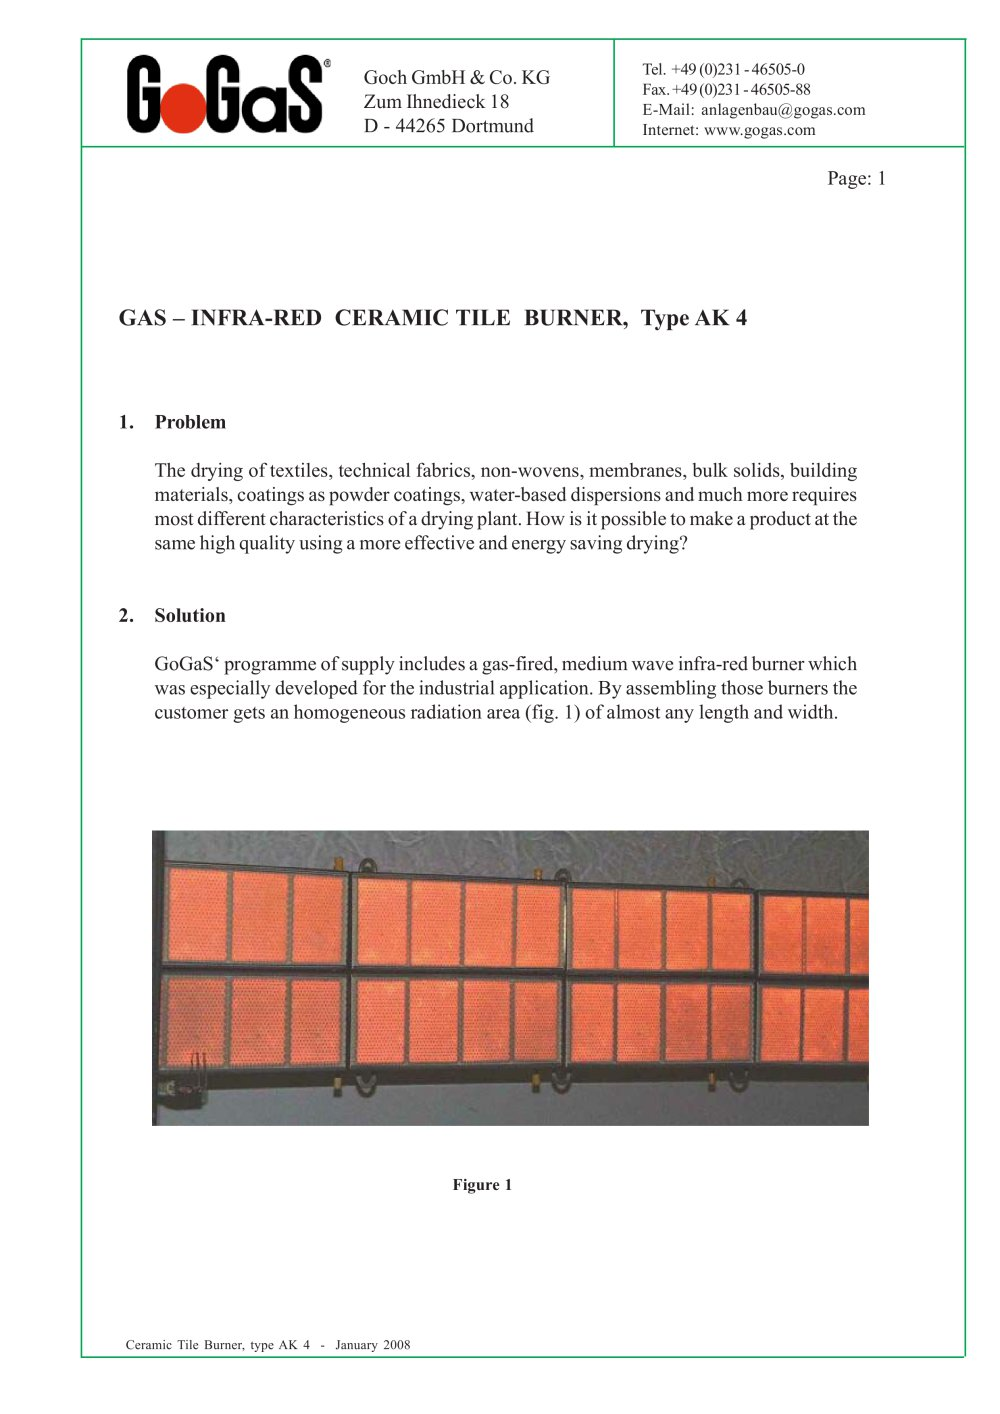 Brochure Ceramic Burner Gogas Goch Gmbh Co Kg Pdf Catalogue